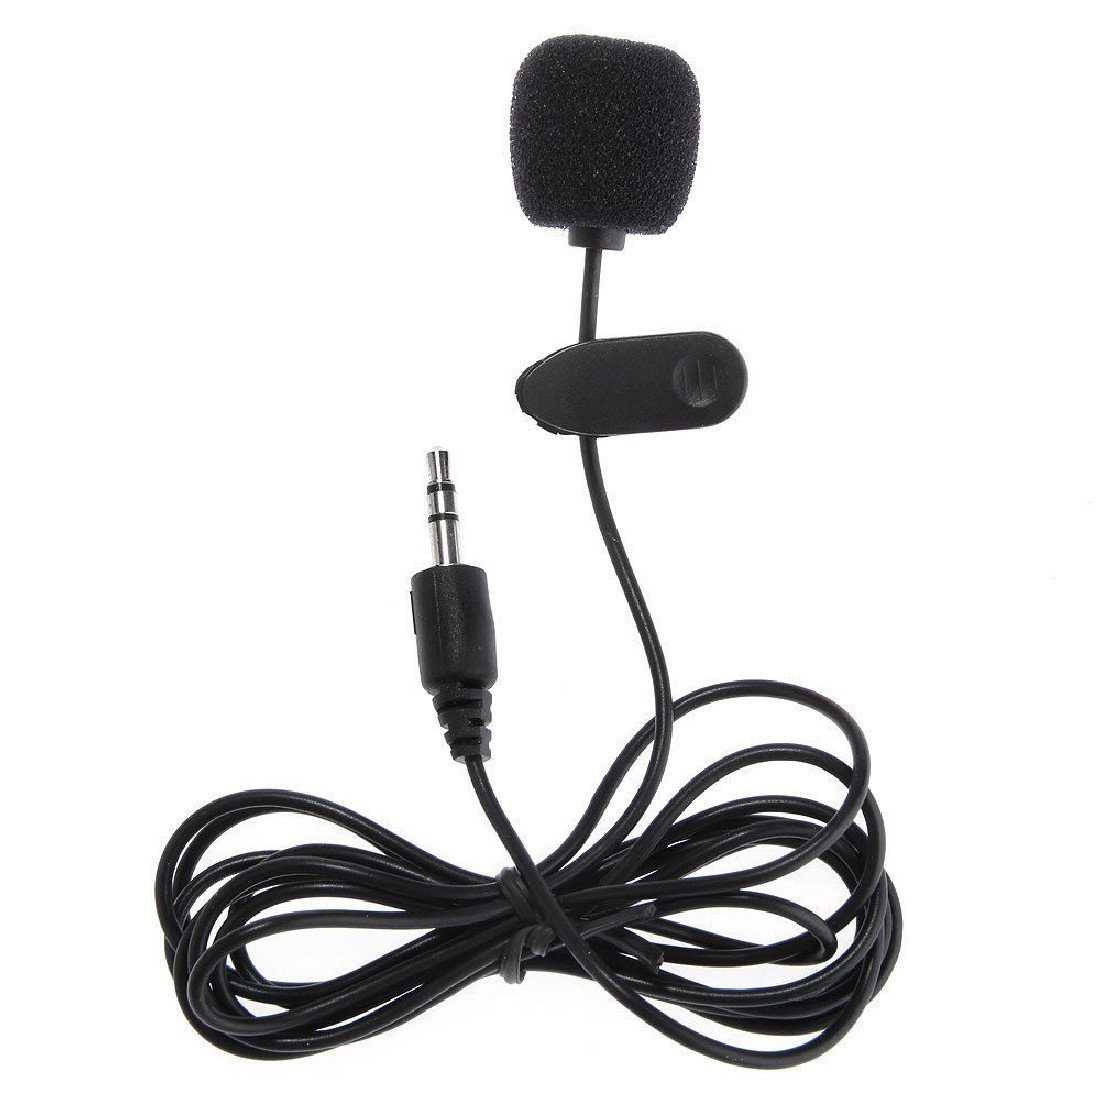 Professional Microphone plastic black durable Clip On Mini Mic 3.5mm Plug for MP3 Mobile Phone Tablet ASTrade